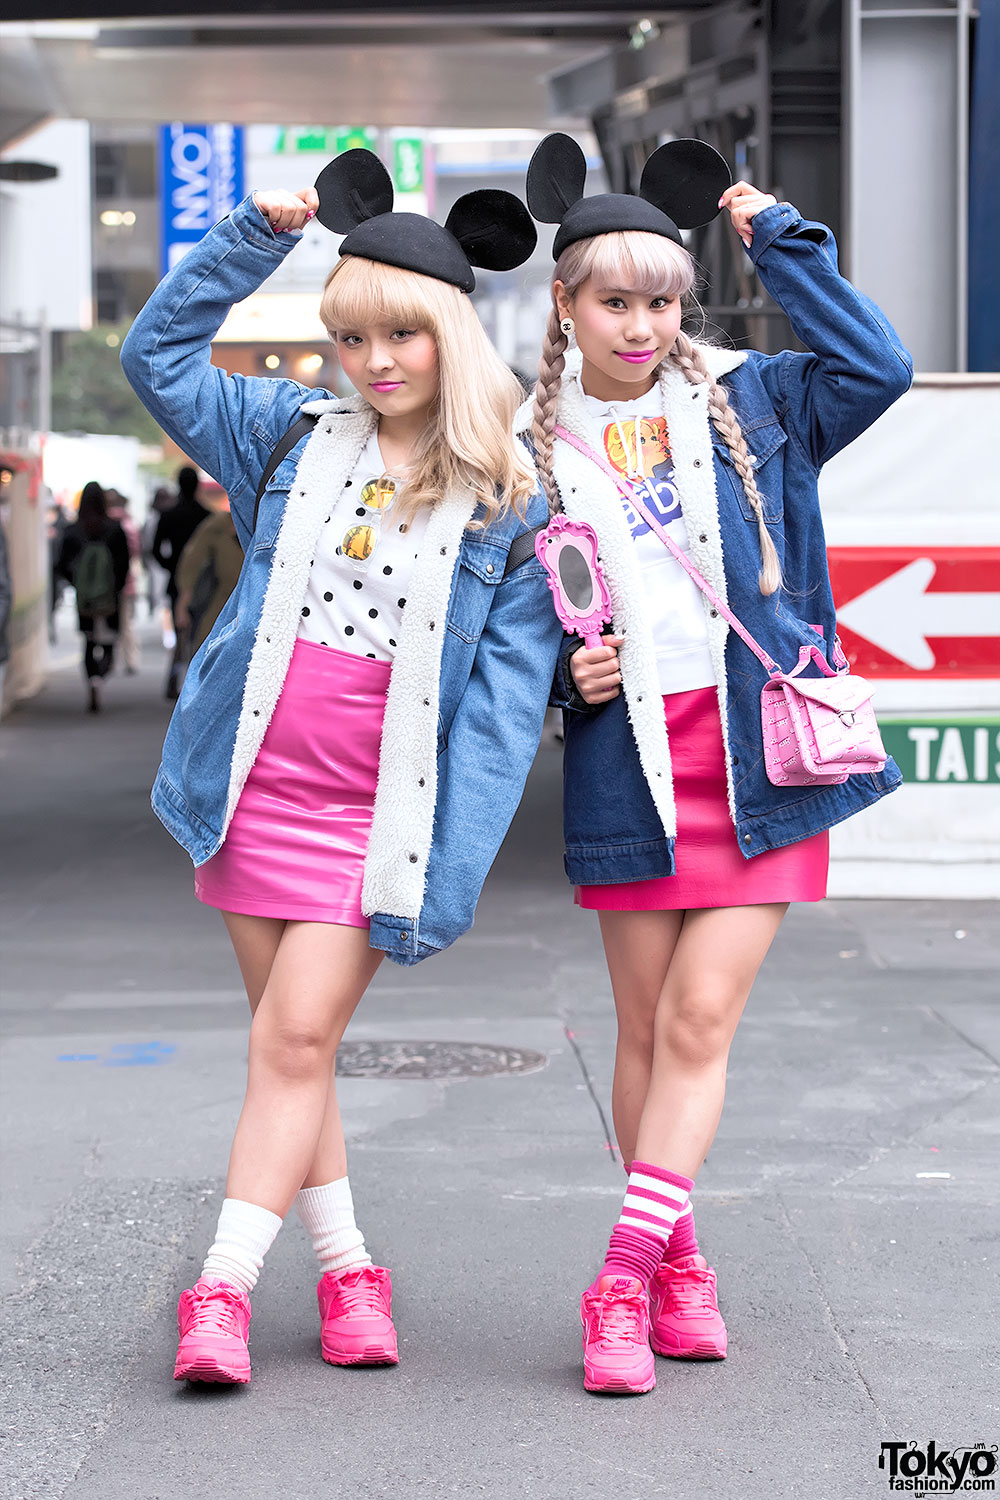 Barbie Girls W Vintage Fashion Mouse Ears In Shibuya